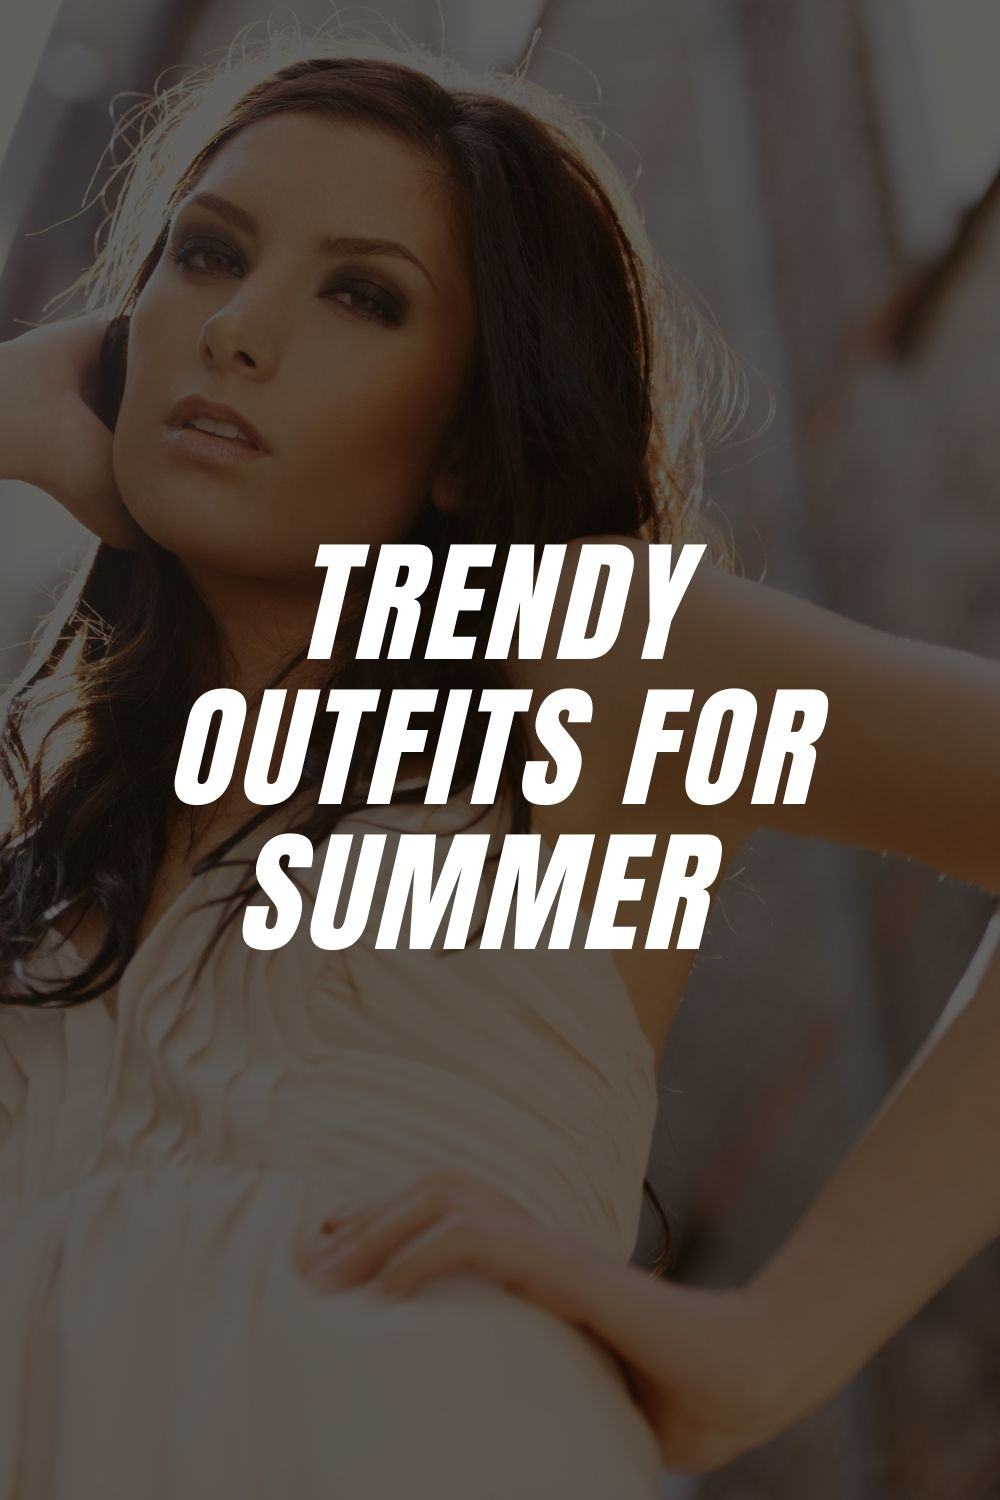 Trendy Outfits for Summer